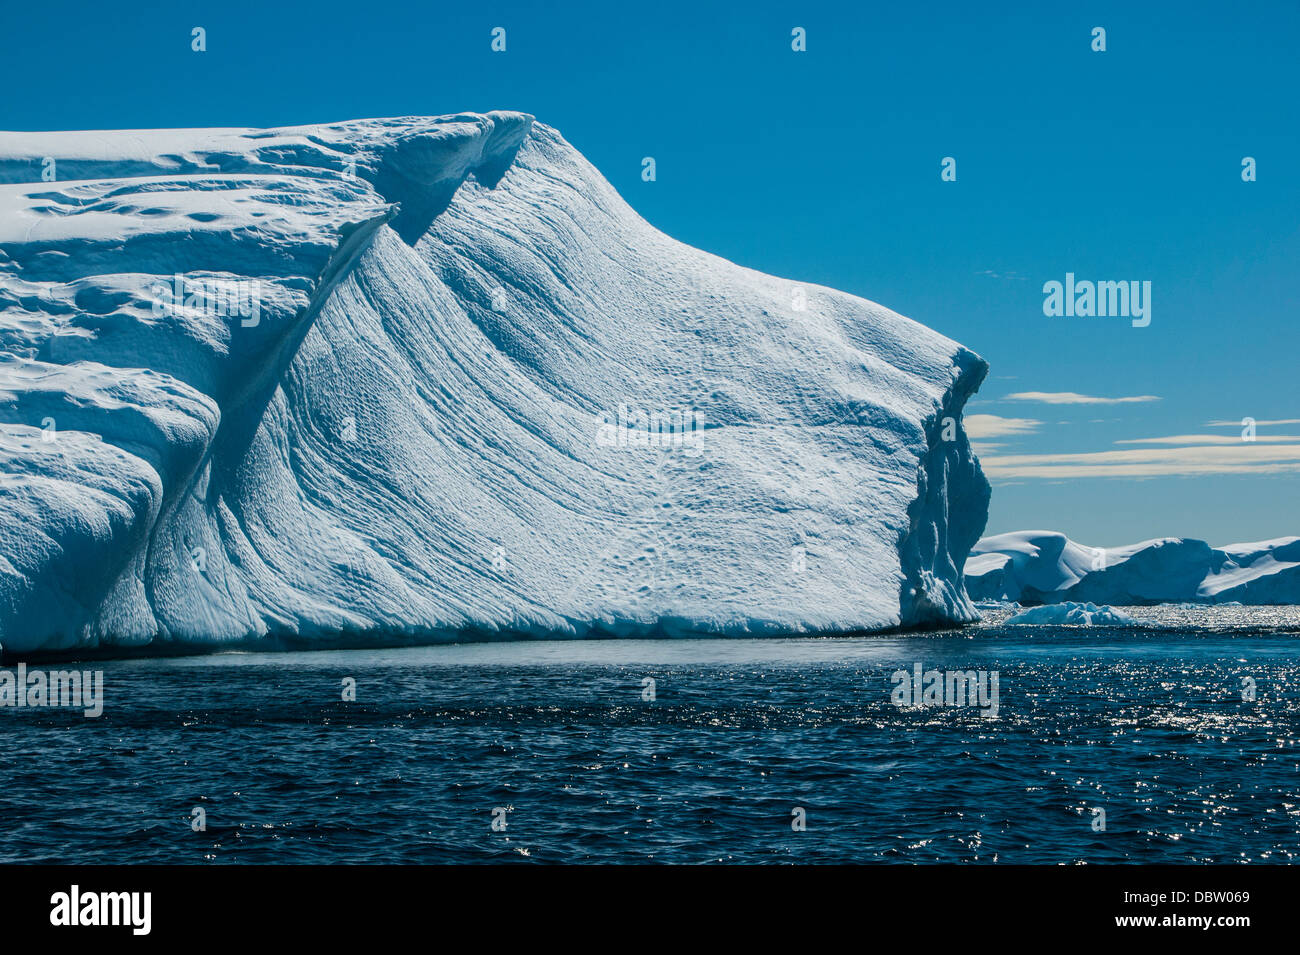 Iceberg, Cierva Cove, l'Antarctique, régions polaires Photo Stock